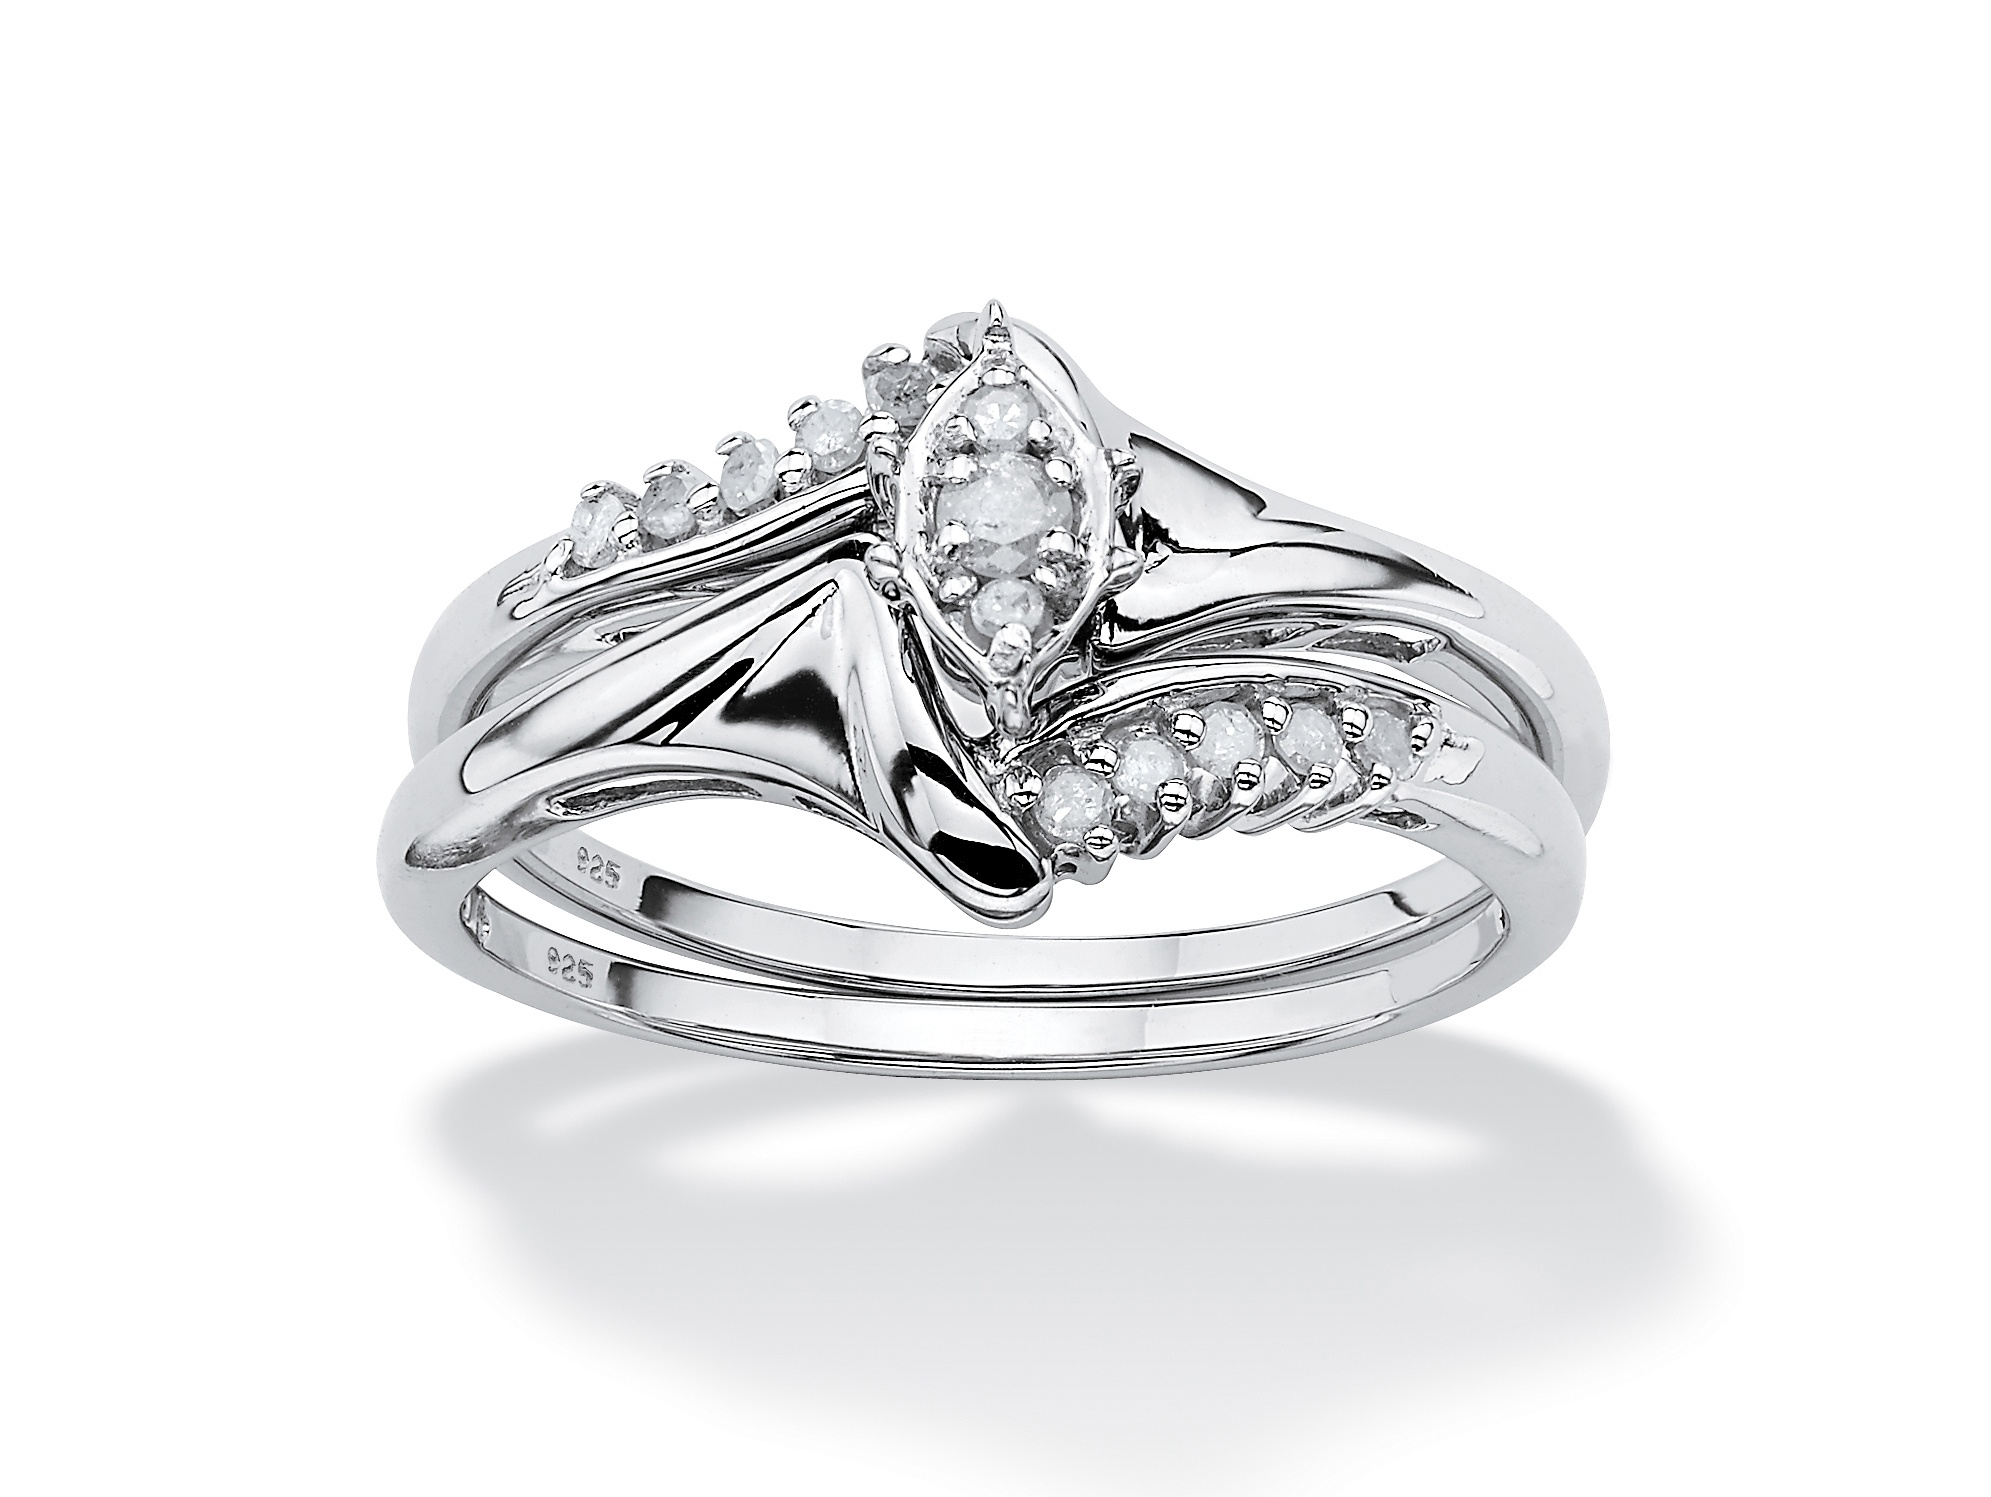 1 5 TCW Round Diamond Two-Piece Bridal Set in Platinum over .925 Sterling Silver by PalmBeach Jewelry